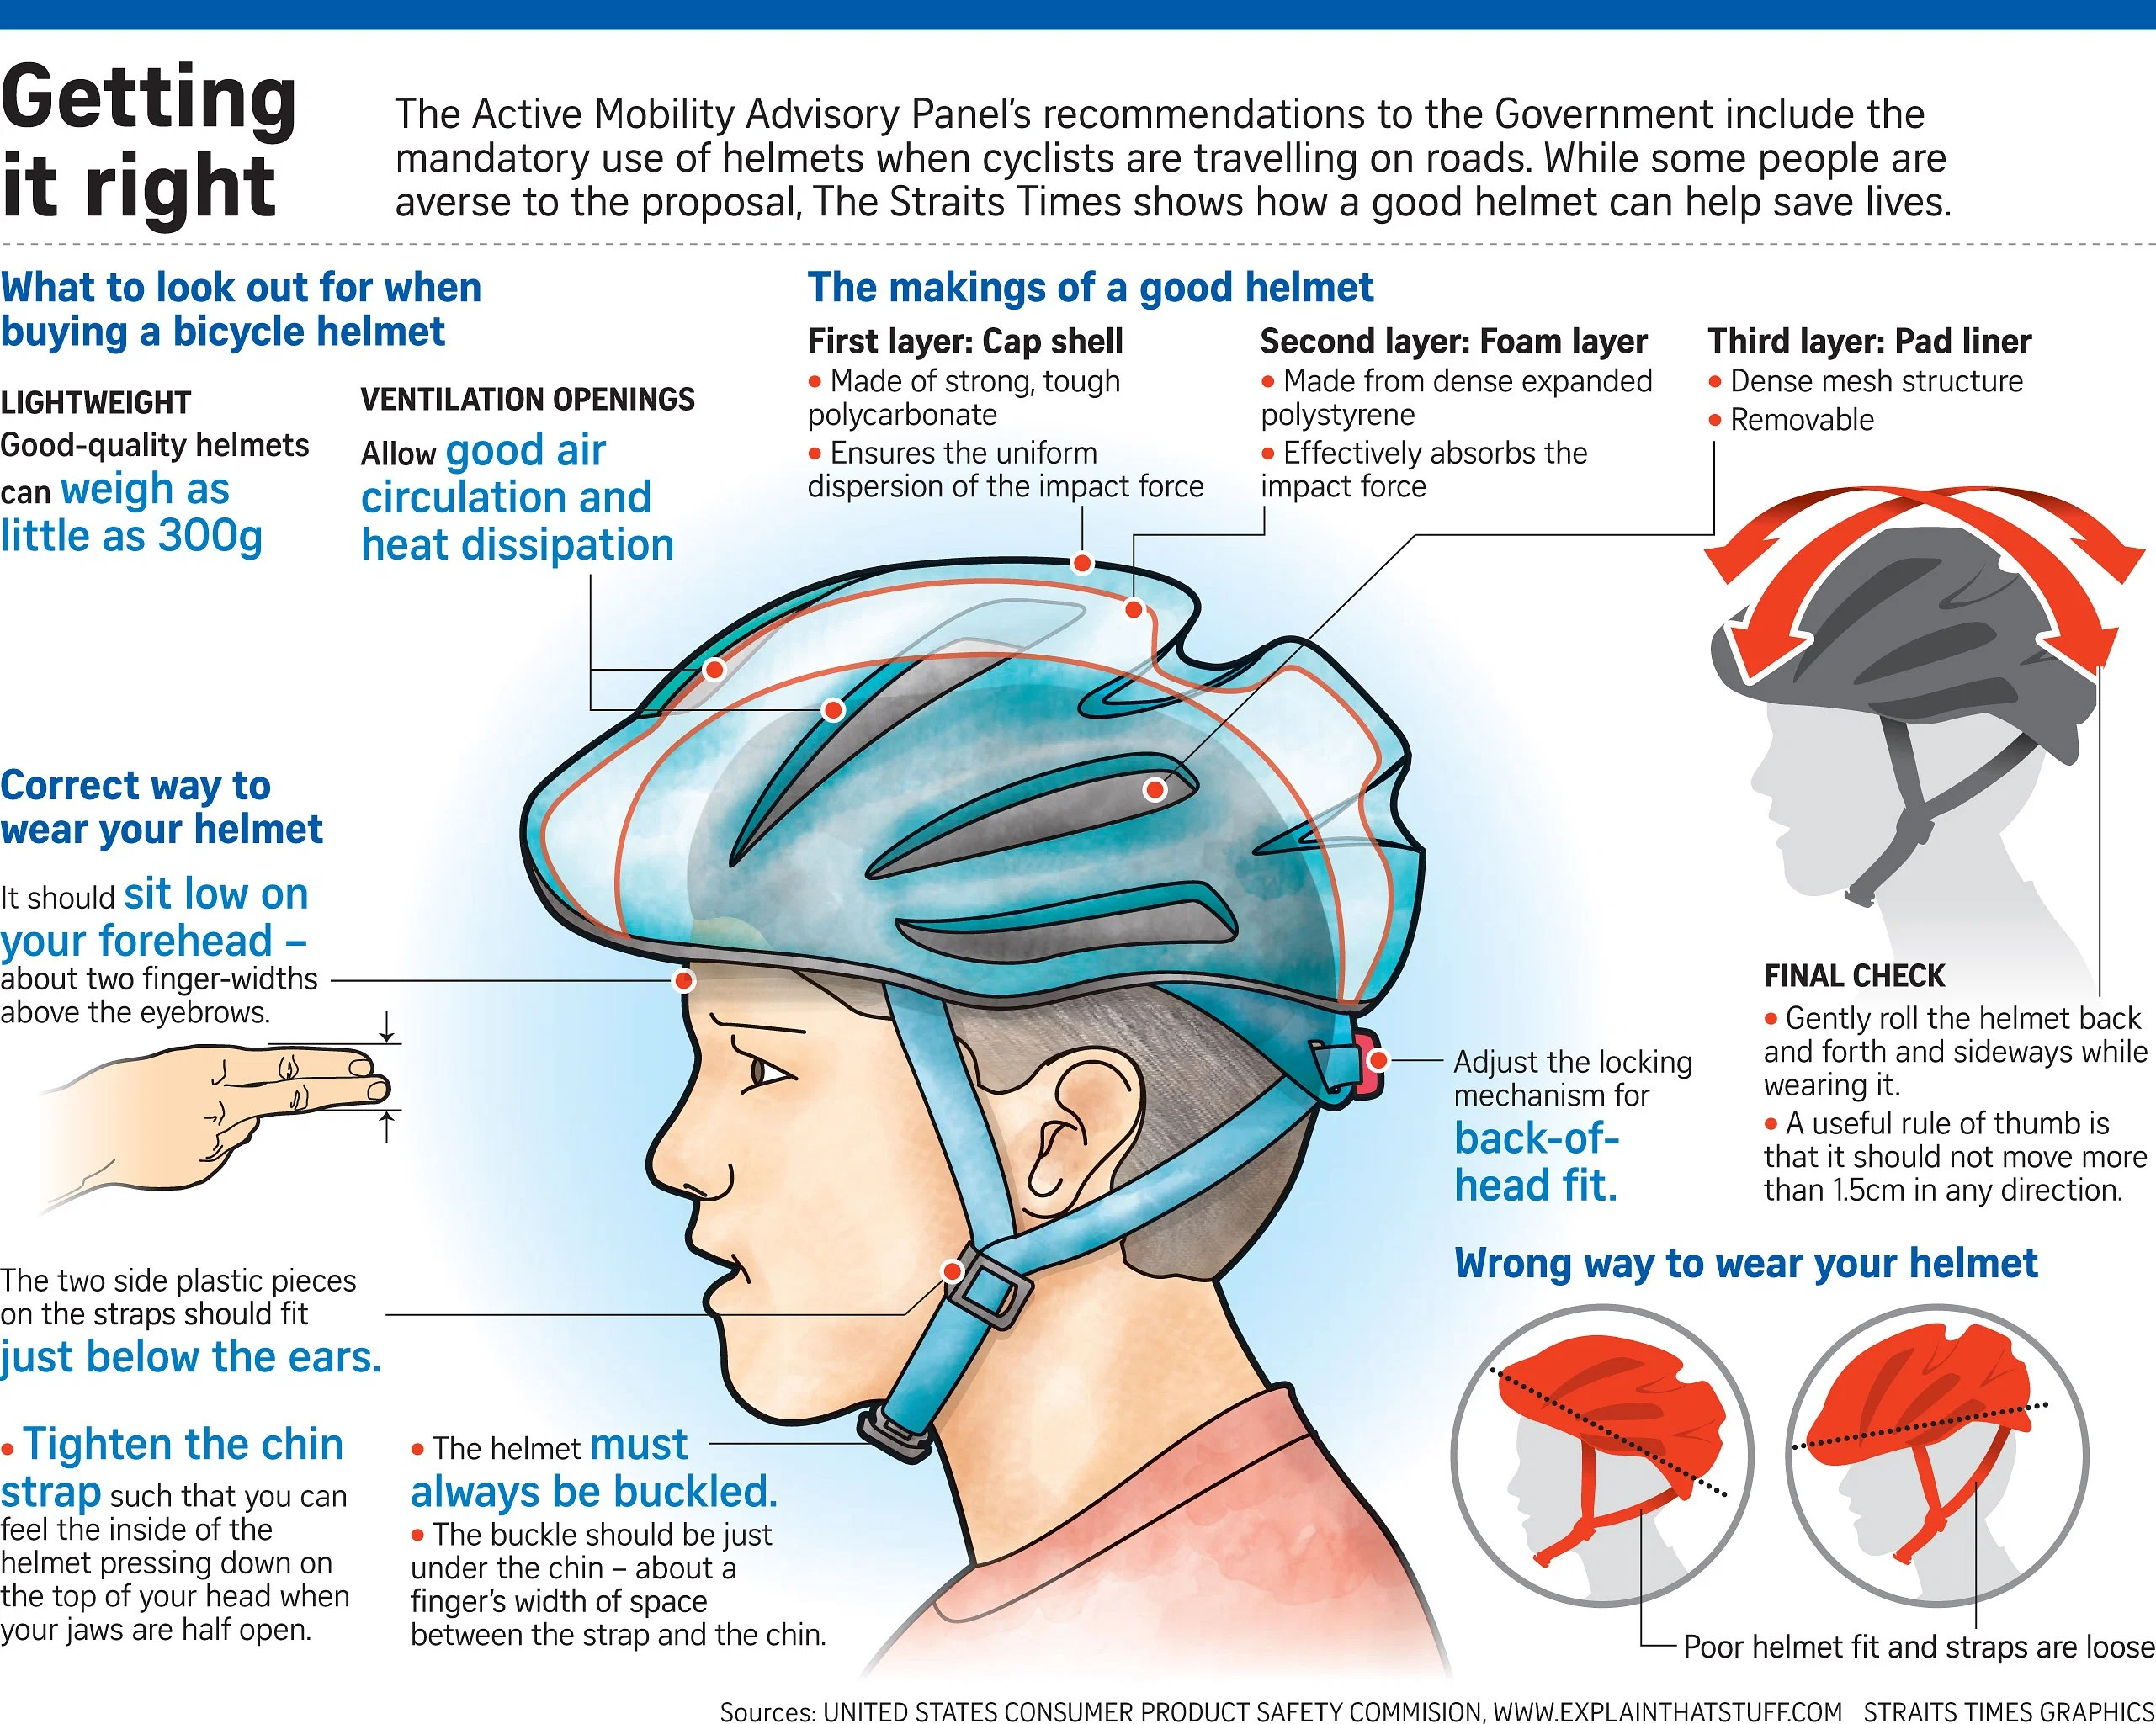 Safer To Wear Helmets But Some Cyclists Against Making It